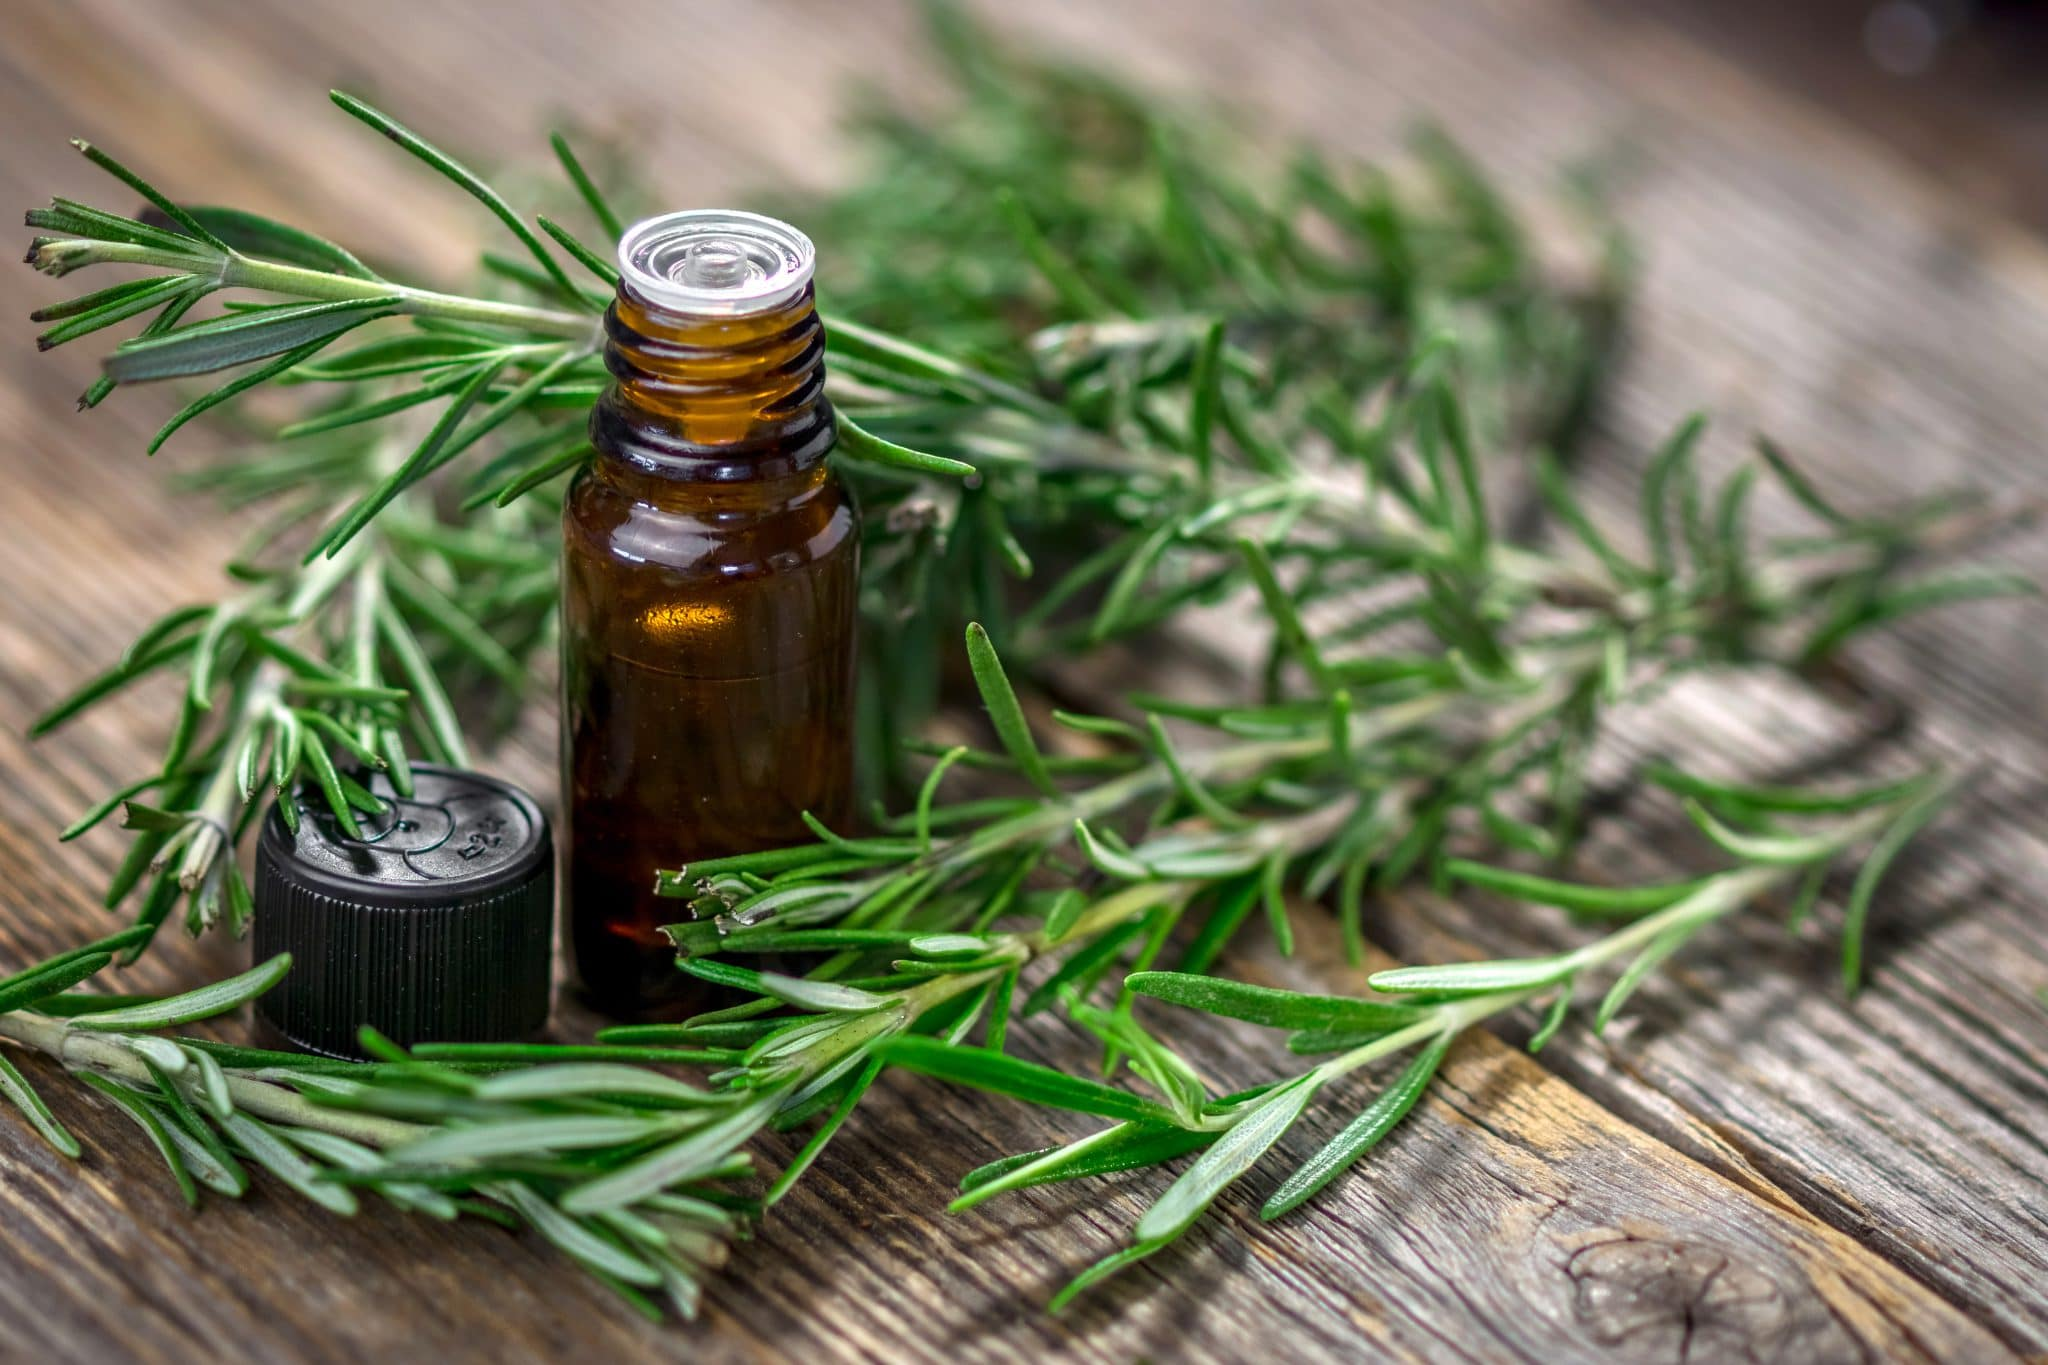 essential oils have many benefits